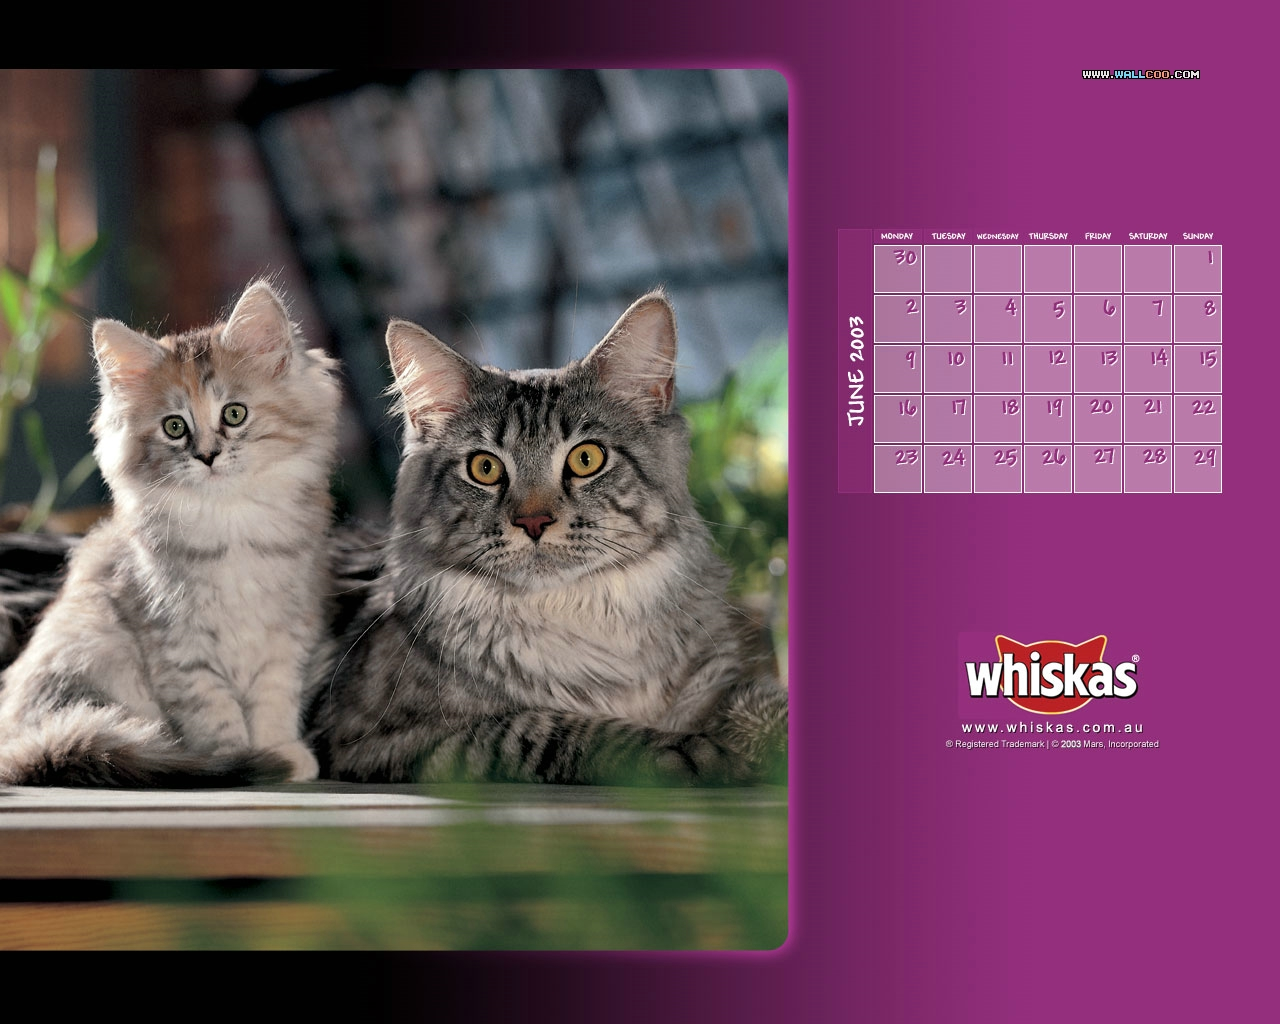 Whiskas Cat Food  Cute Kitten Desktop 1280x1024 NO15